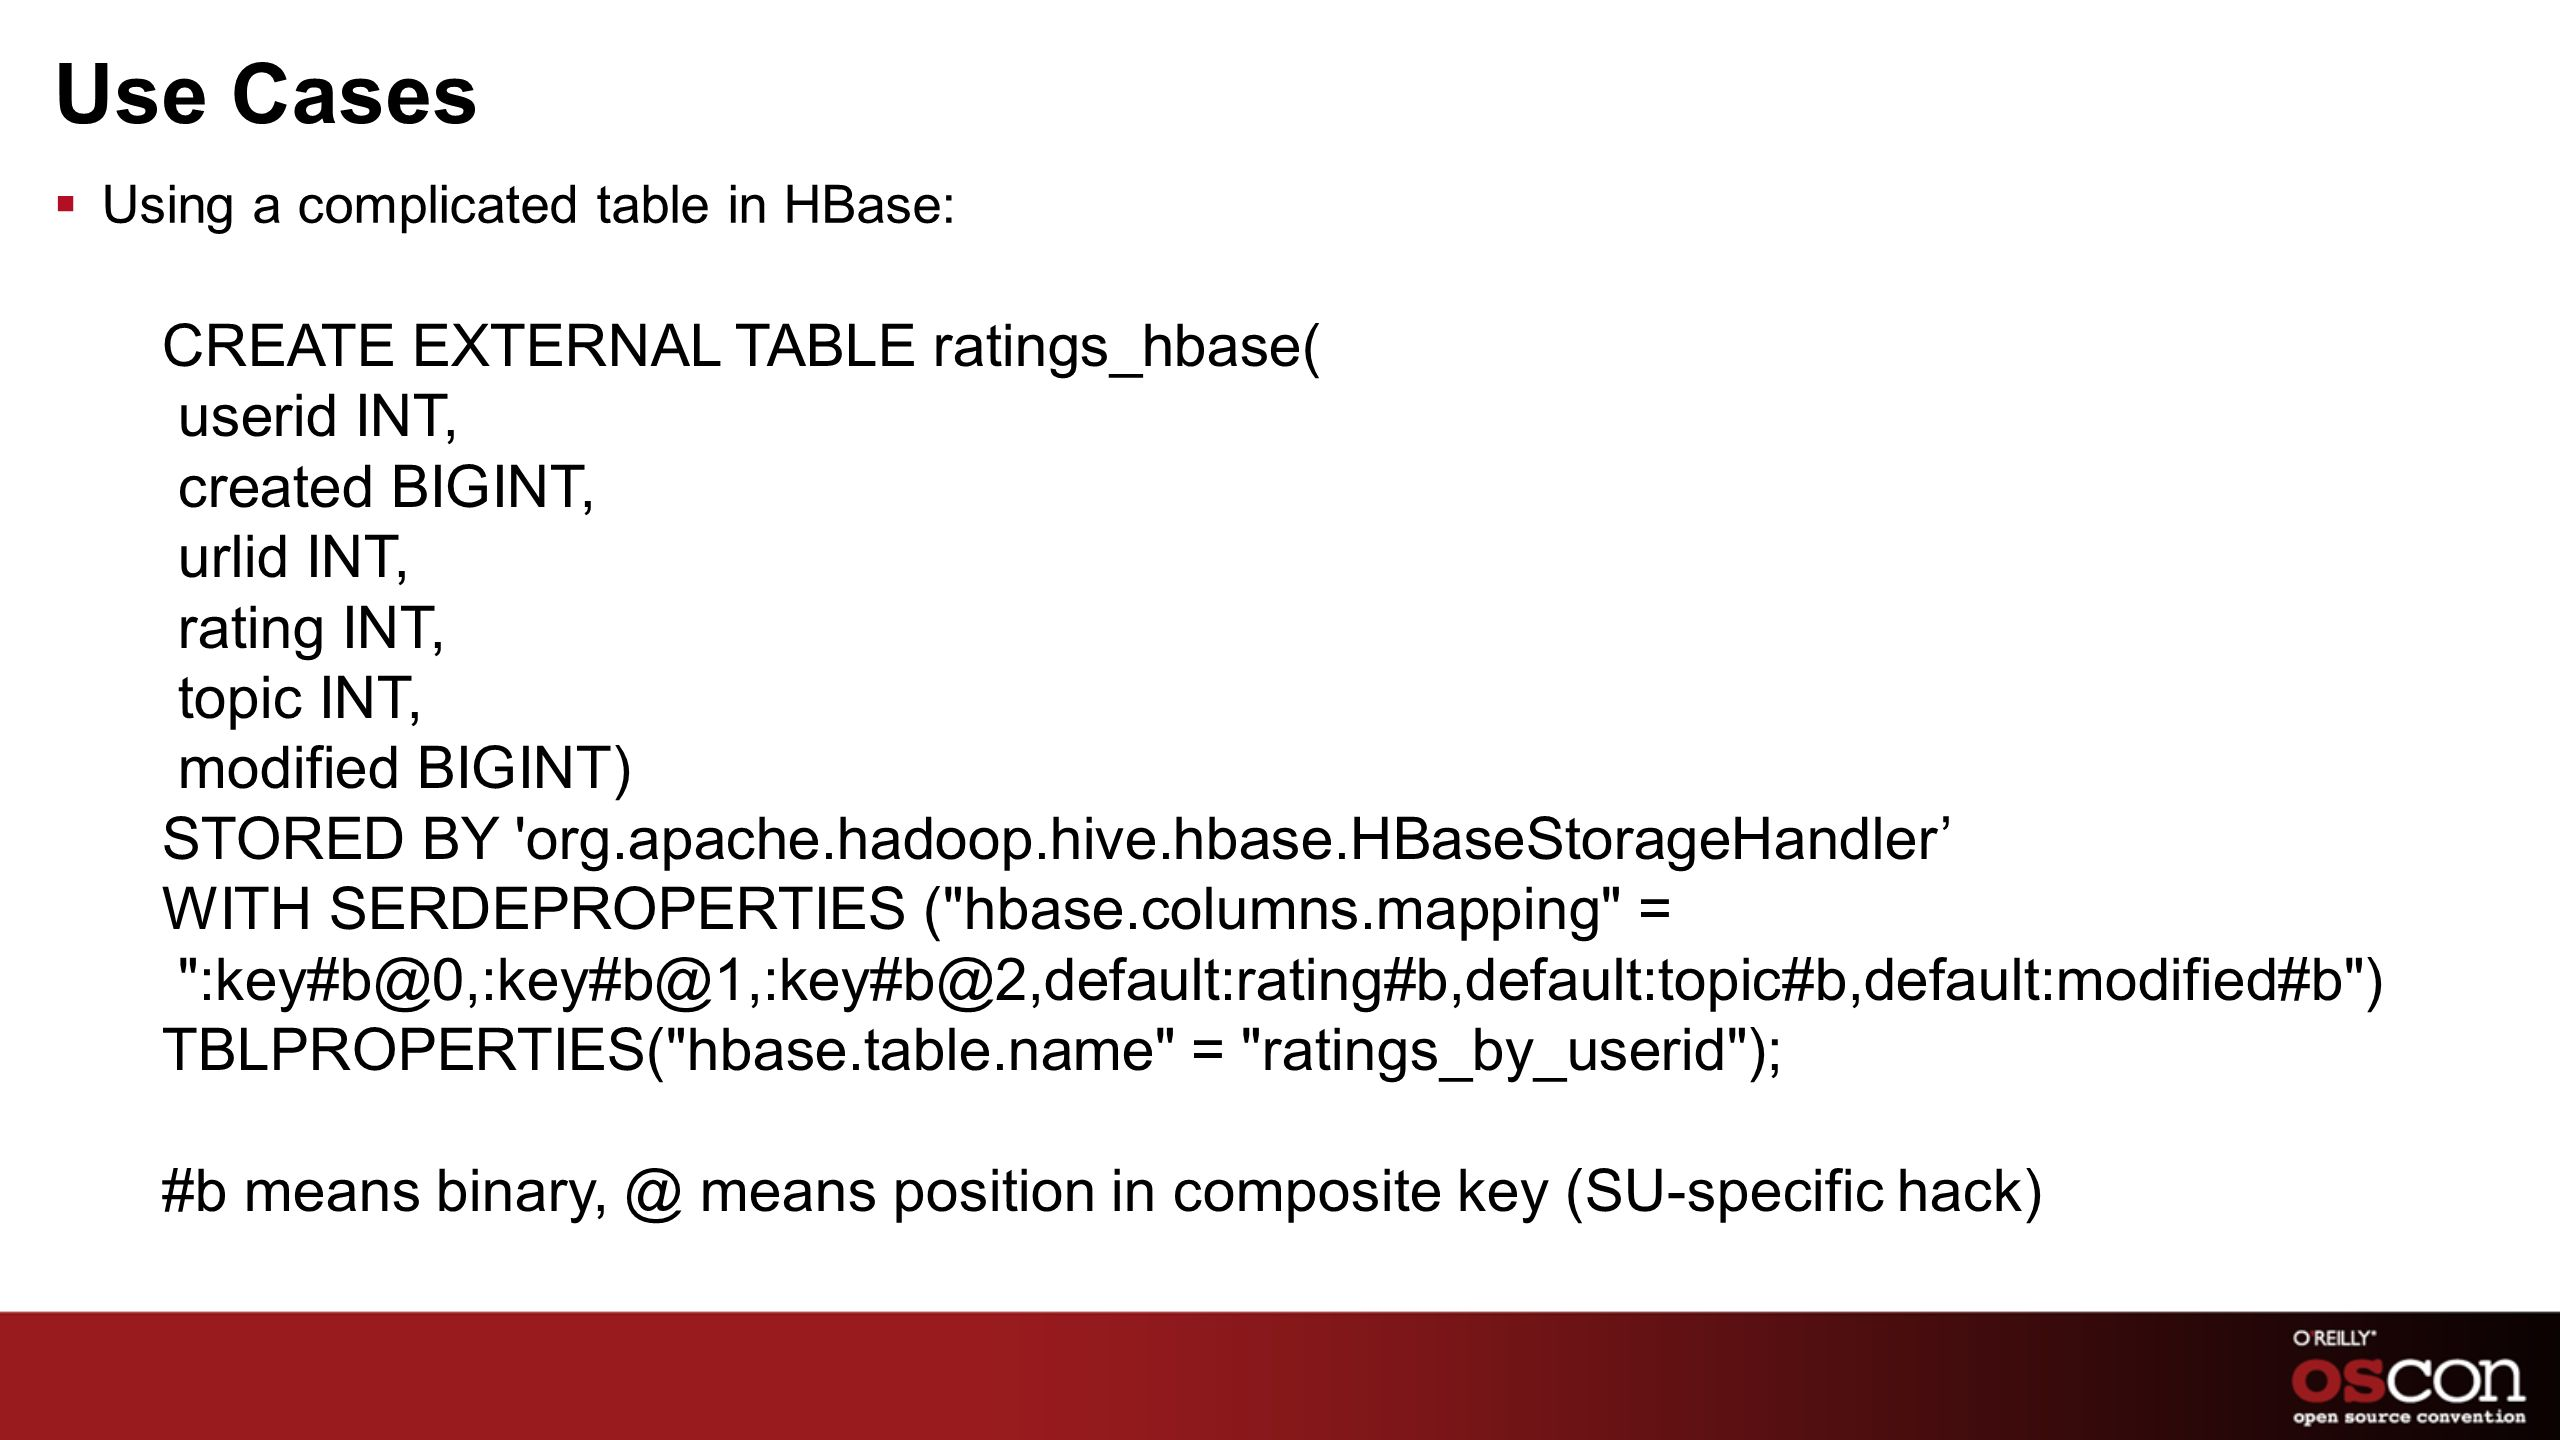 Use Cases CREATE EXTERNAL TABLE ratings_hbase( userid INT,